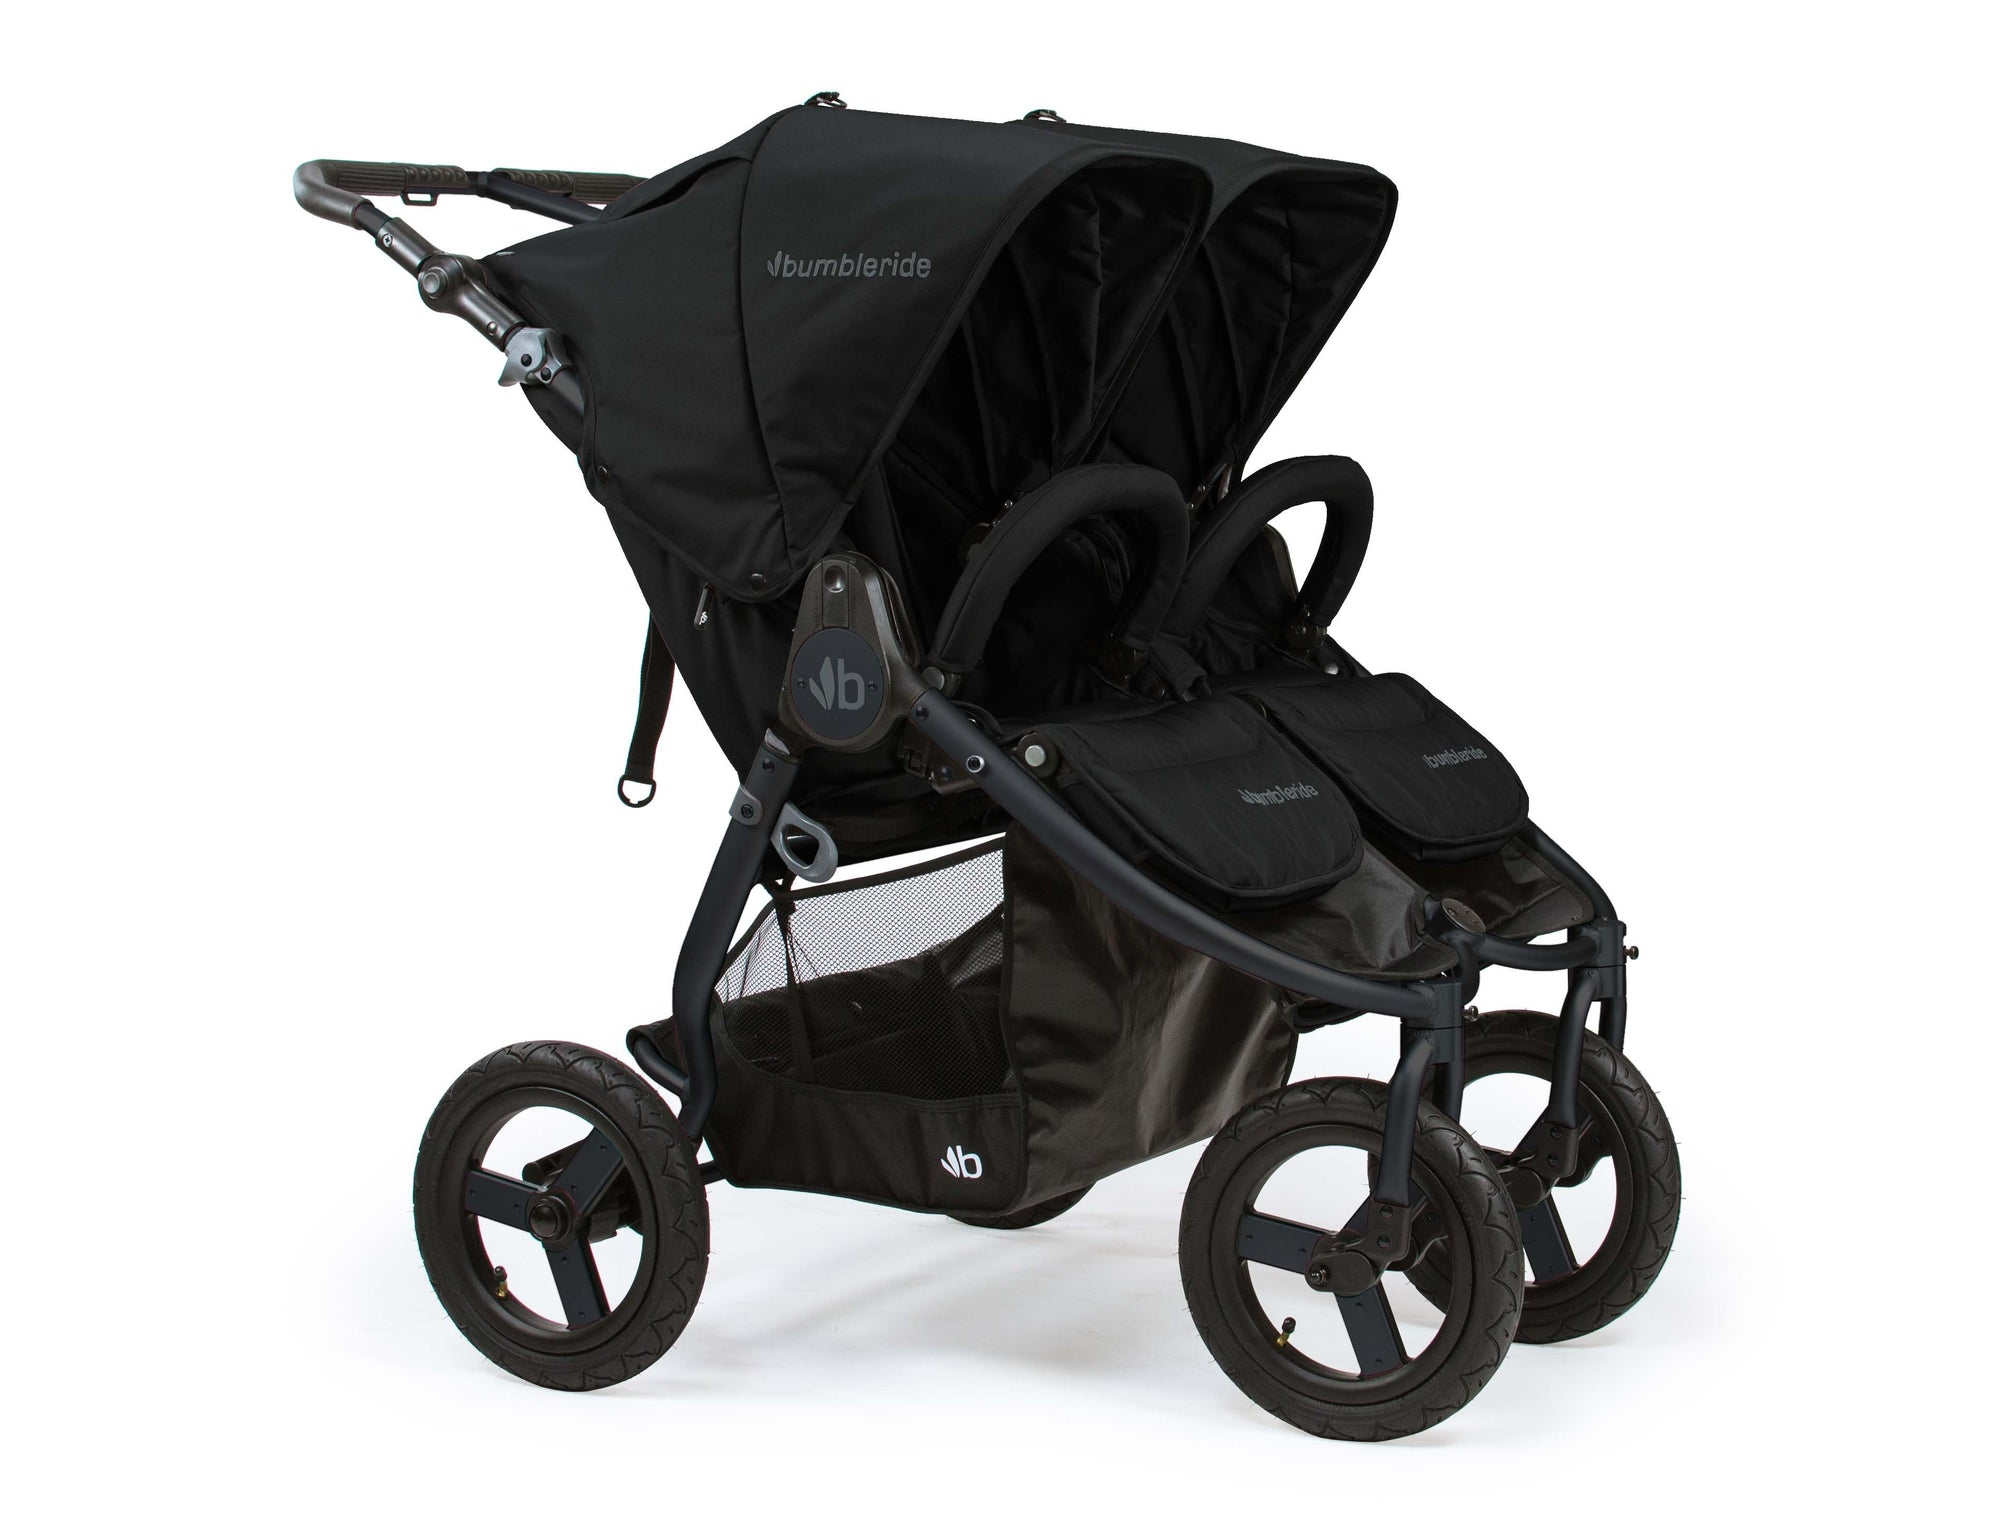 BUMBLERIDE INDIE TWIN SIDE BY SIDE STROLLER